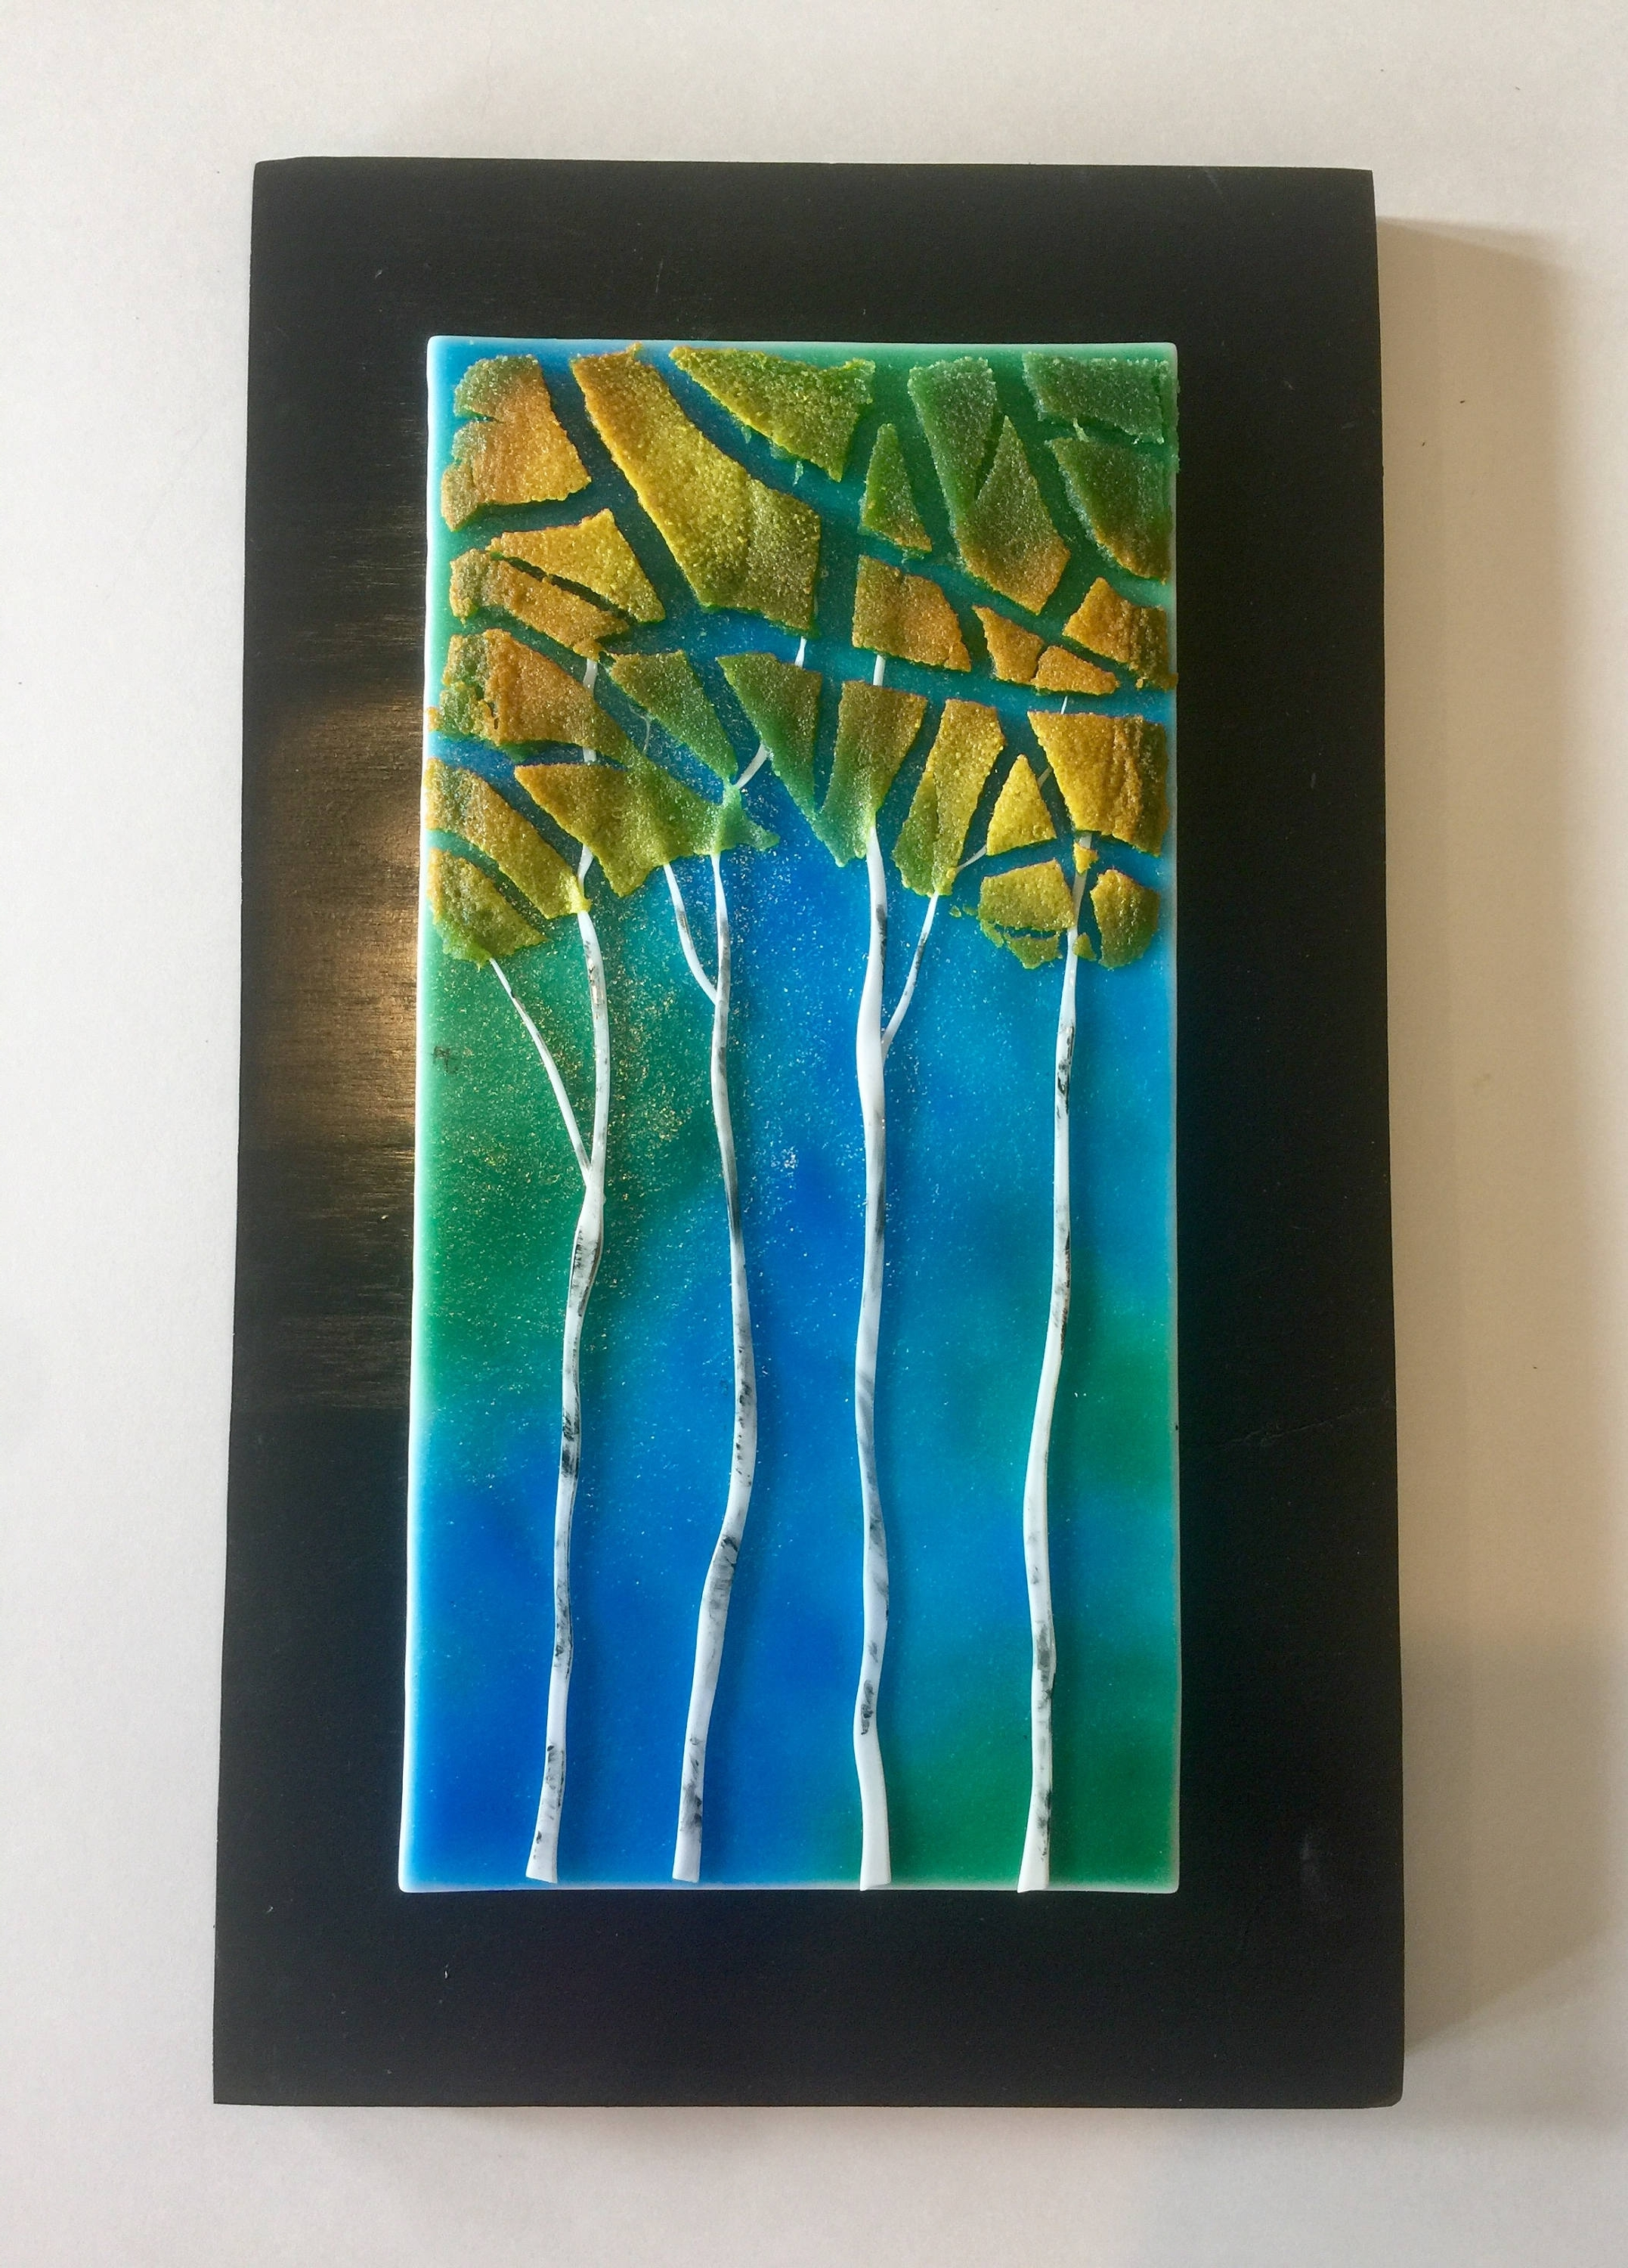 Fused Glass Art For Walls In Fashionable Fused Glass Art, Fused Glass, Handmade Fused Glass,fused Glass (View 3 of 15)